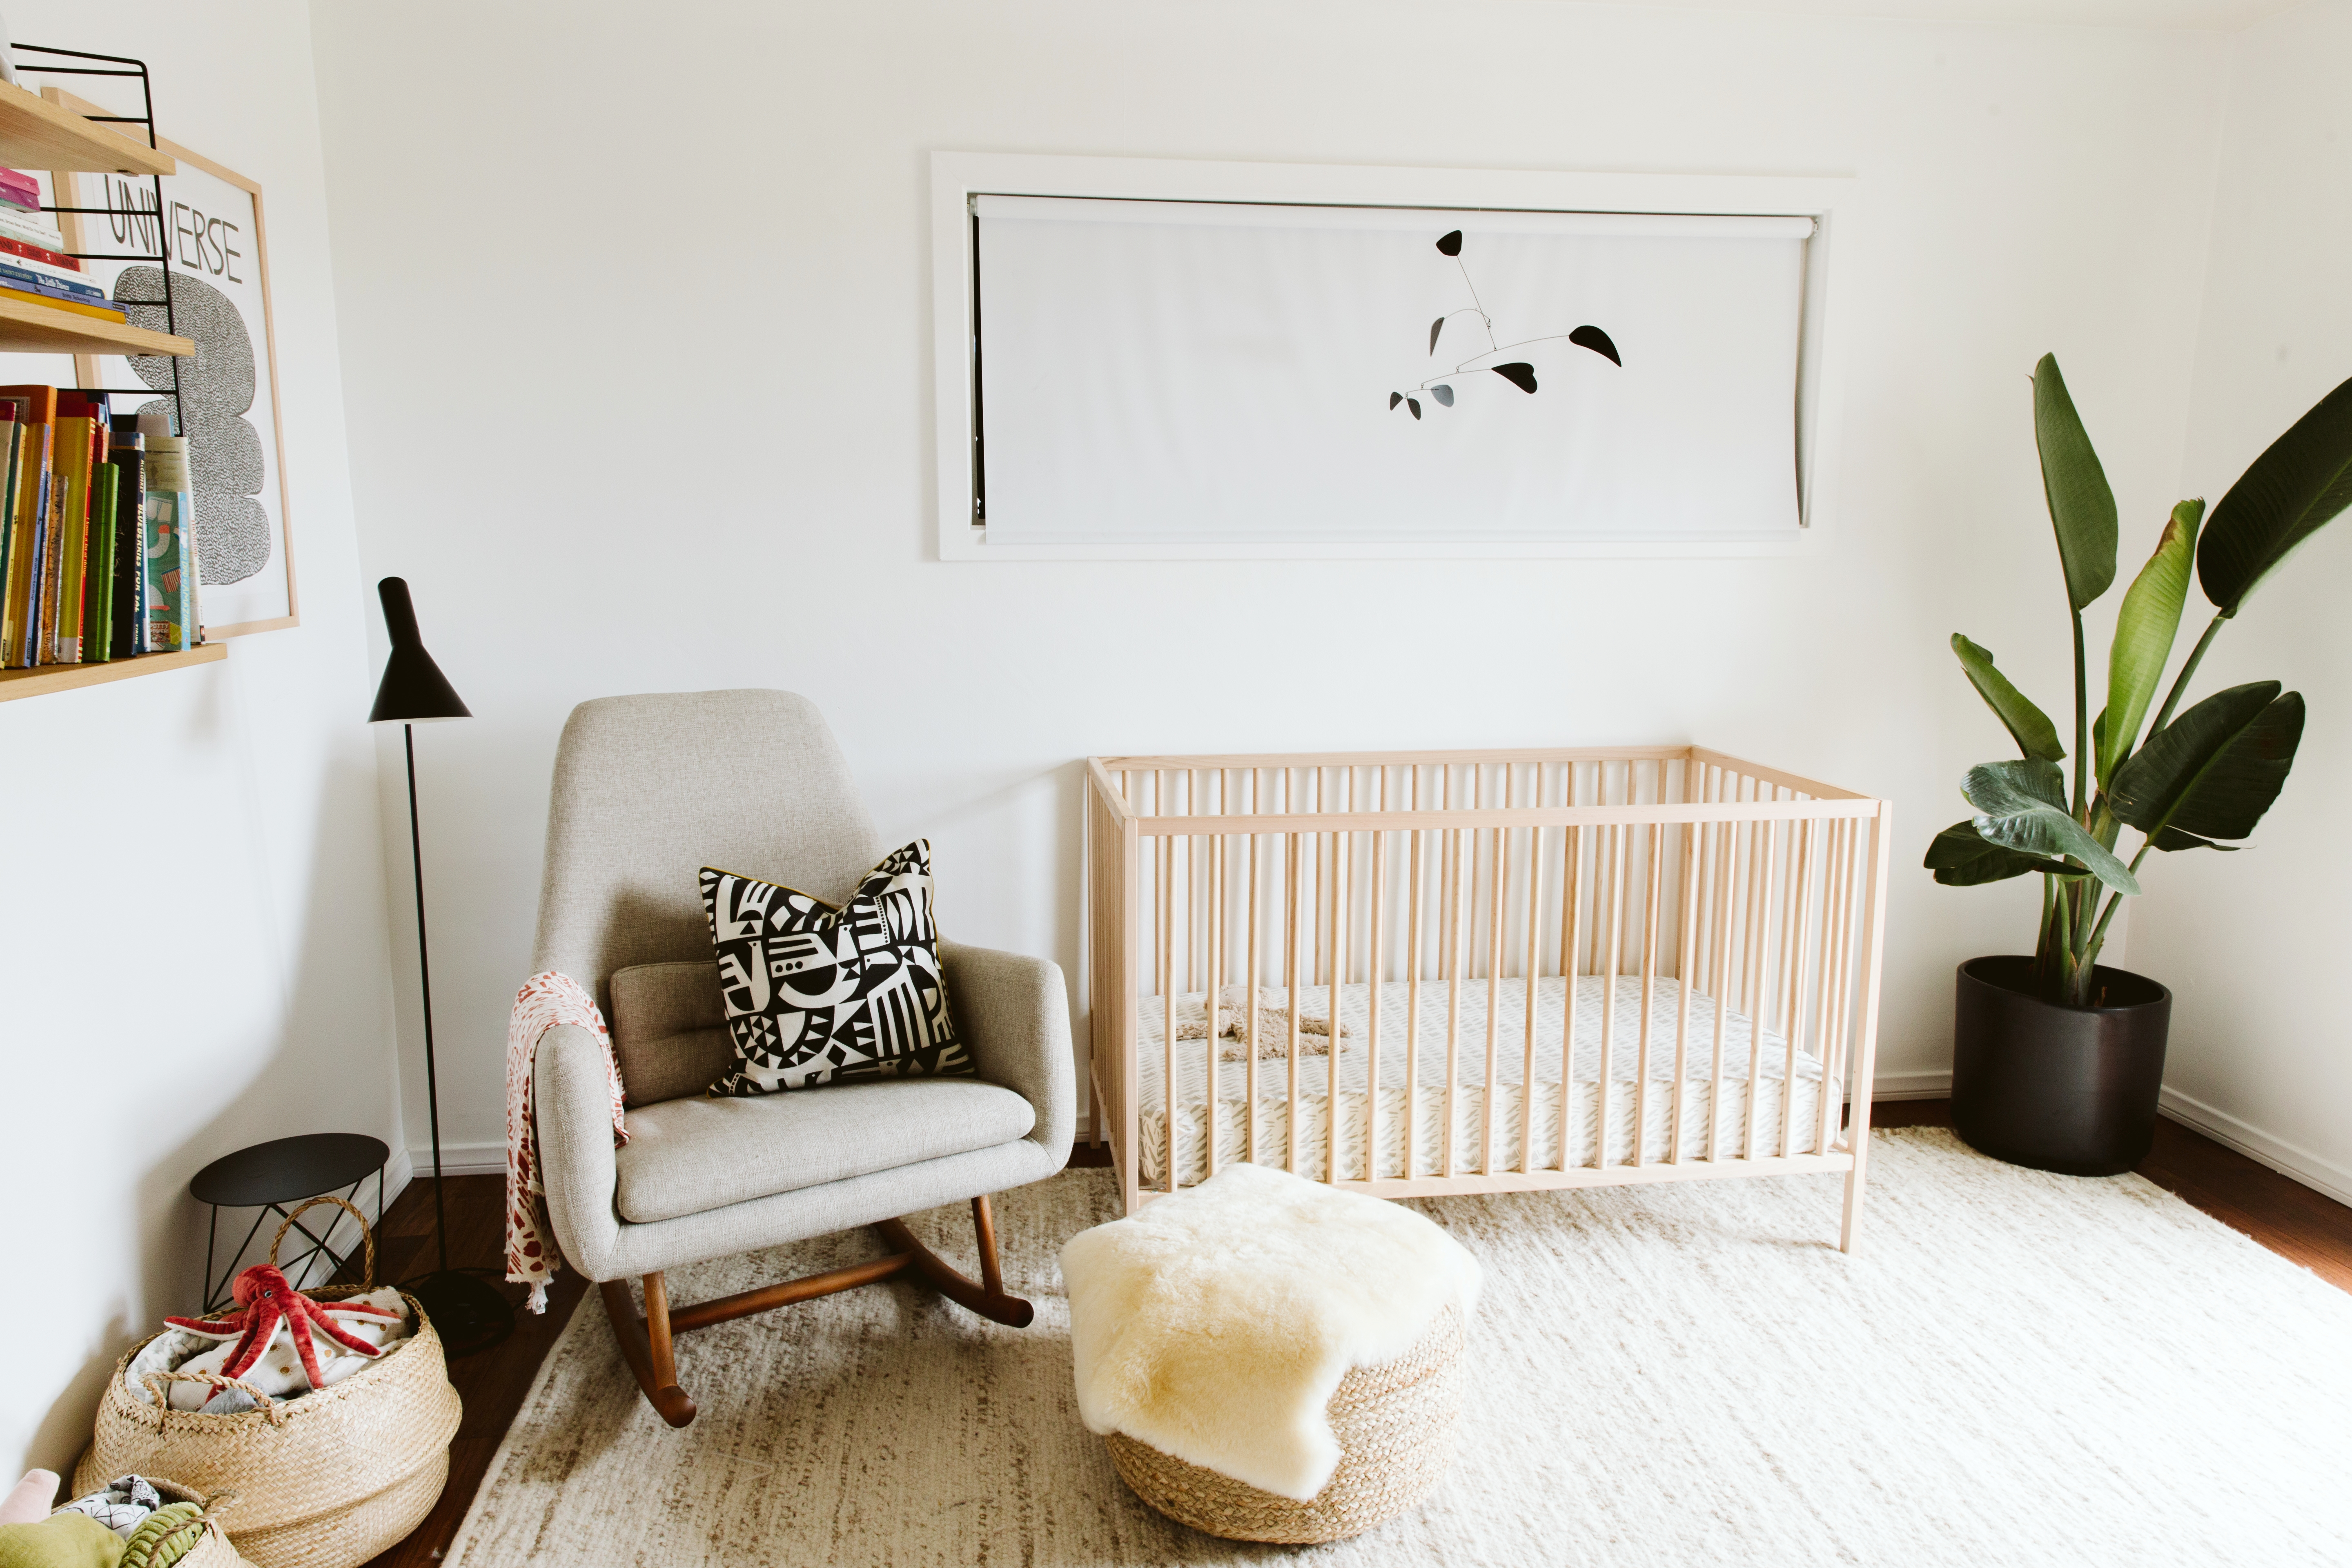 How to Prep Your Baby's Nursery for Their Complete Safety